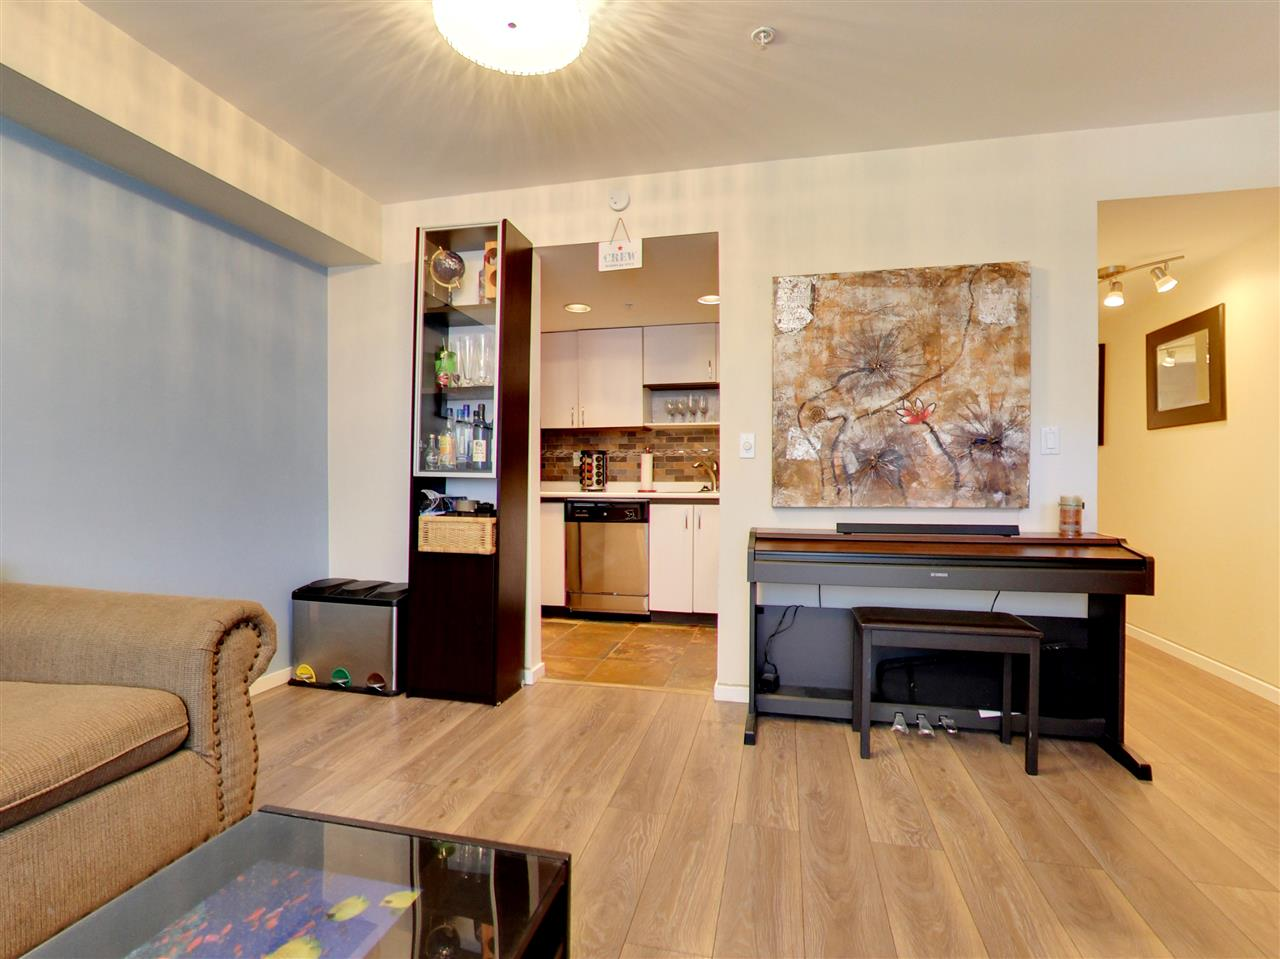 Photo 6: 2309 ALDER STREET in Vancouver: Fairview VW Condo for sale (Vancouver West)  : MLS(r) # R2115607